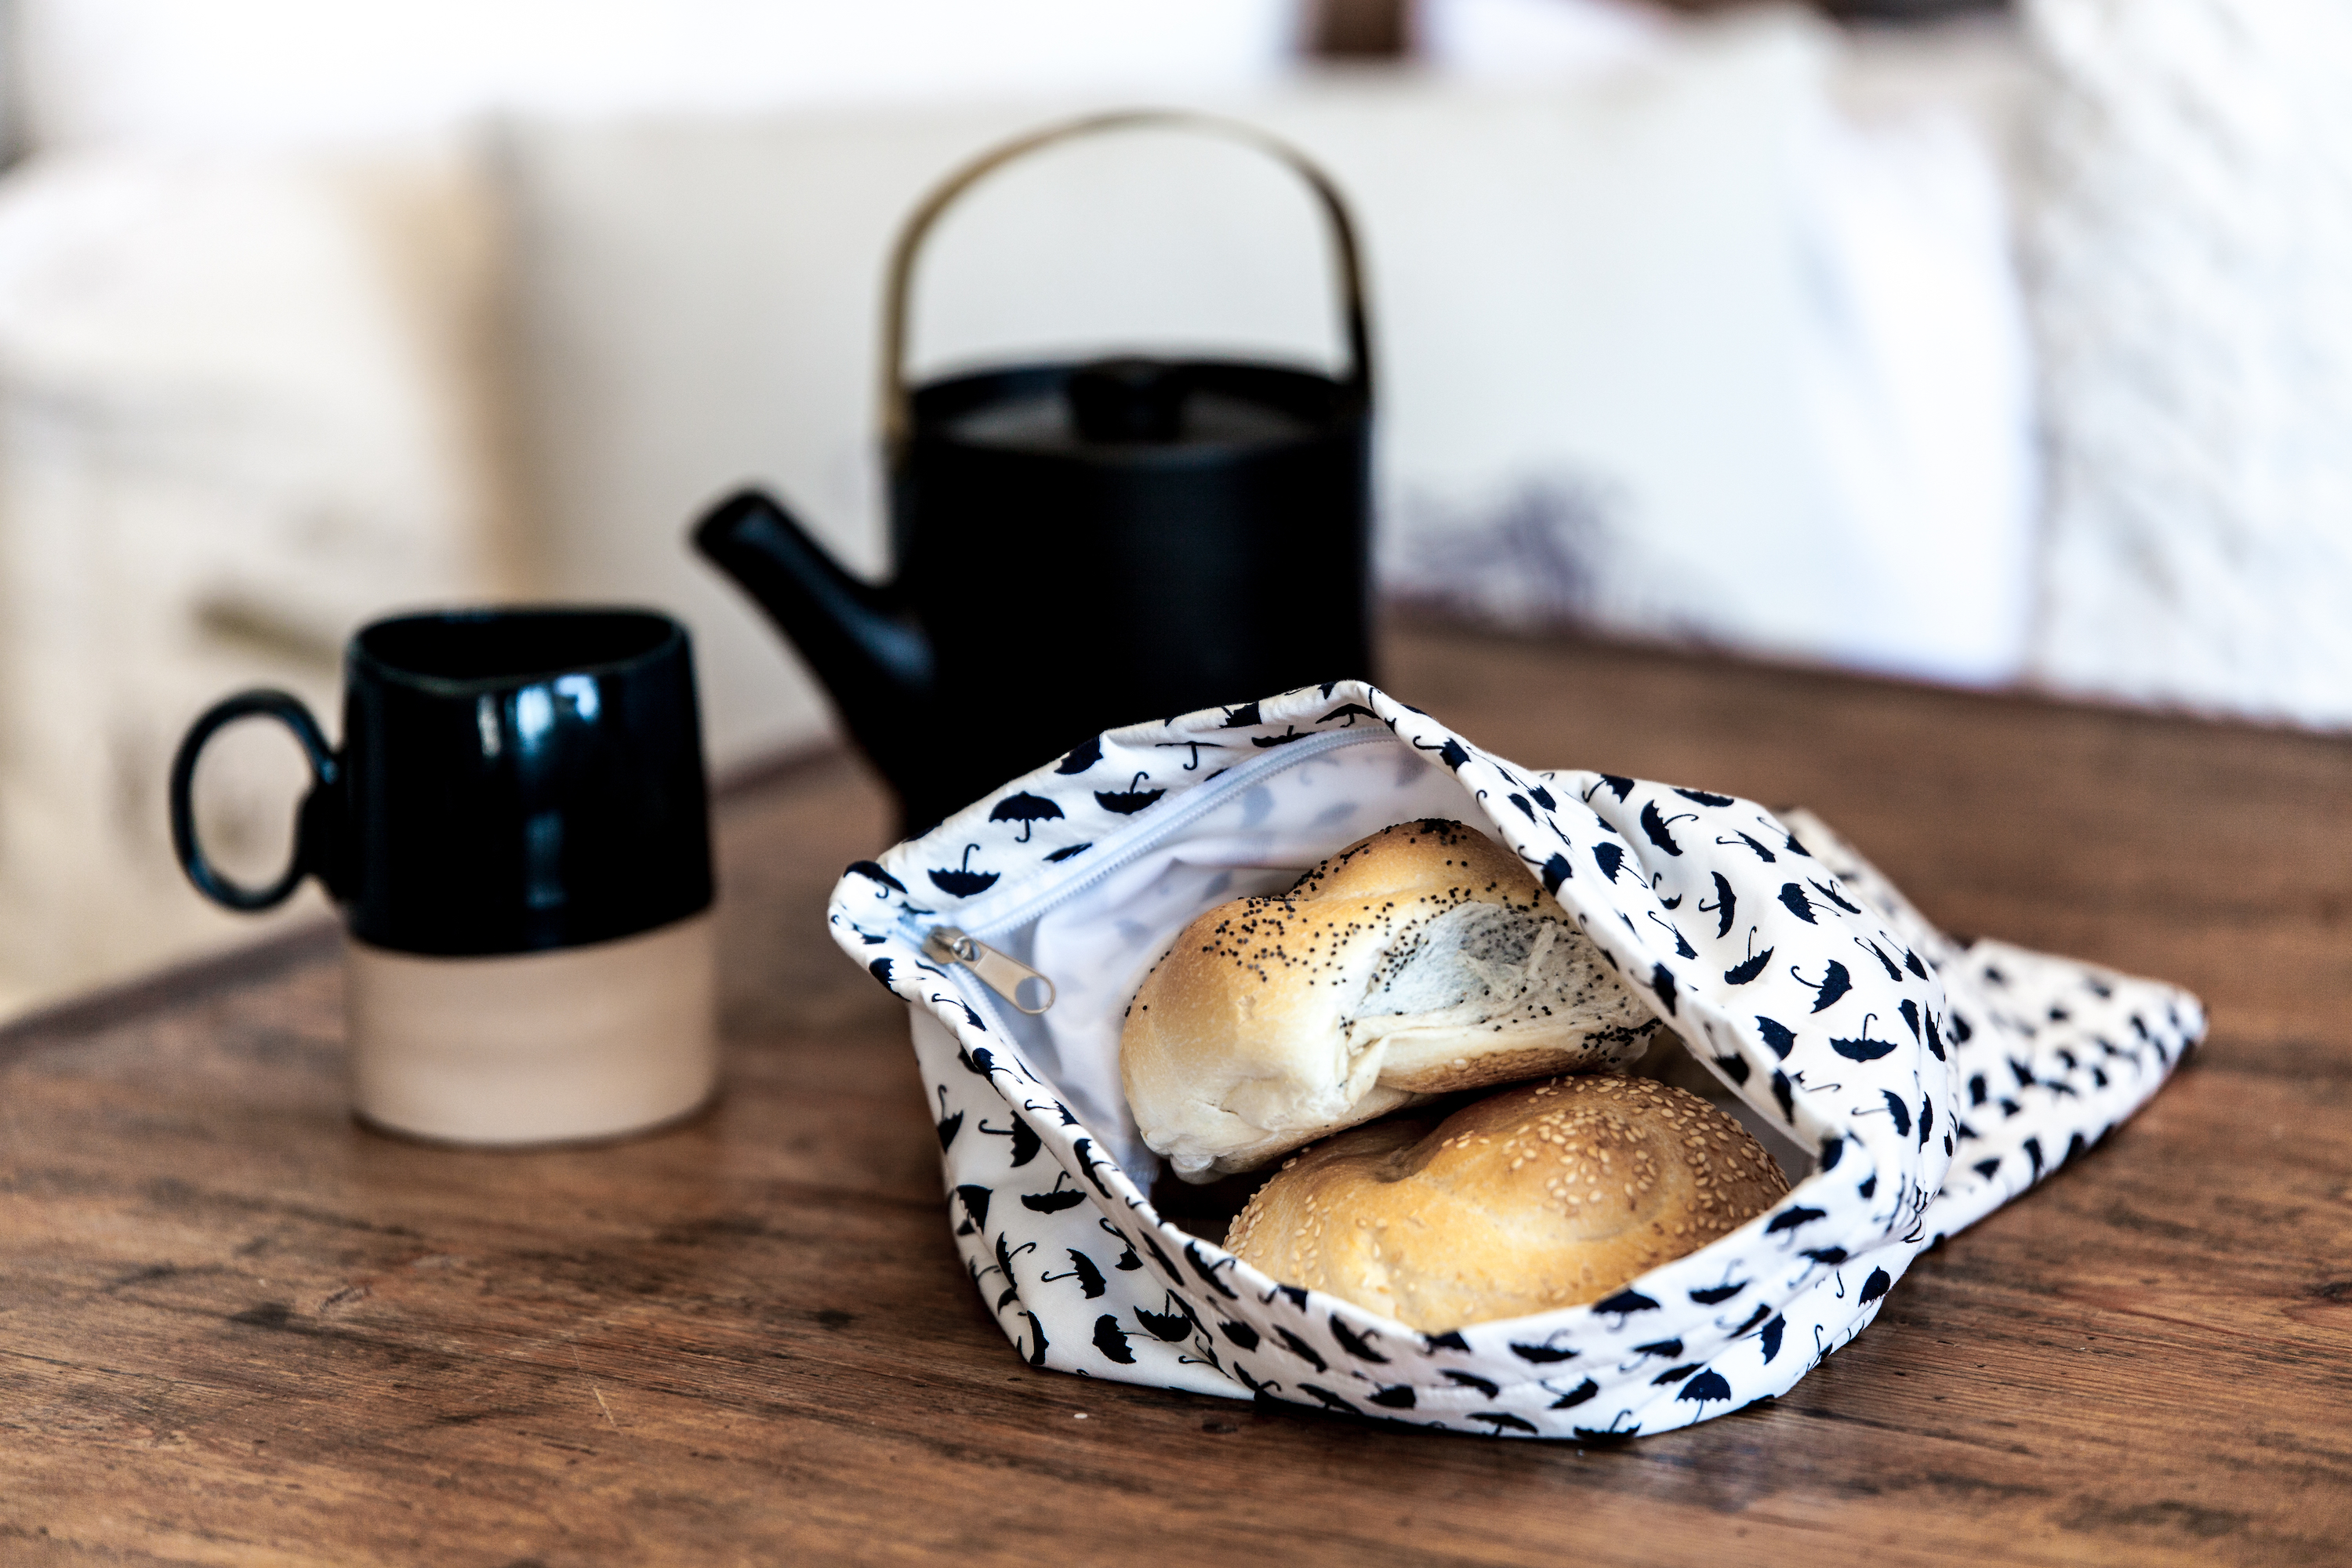 Nowhere & Everywhere Zero Waste Kits Recycled Cotton Zip Lining Produce Bag Large Bread Bag Kitchen Plastic Free Products